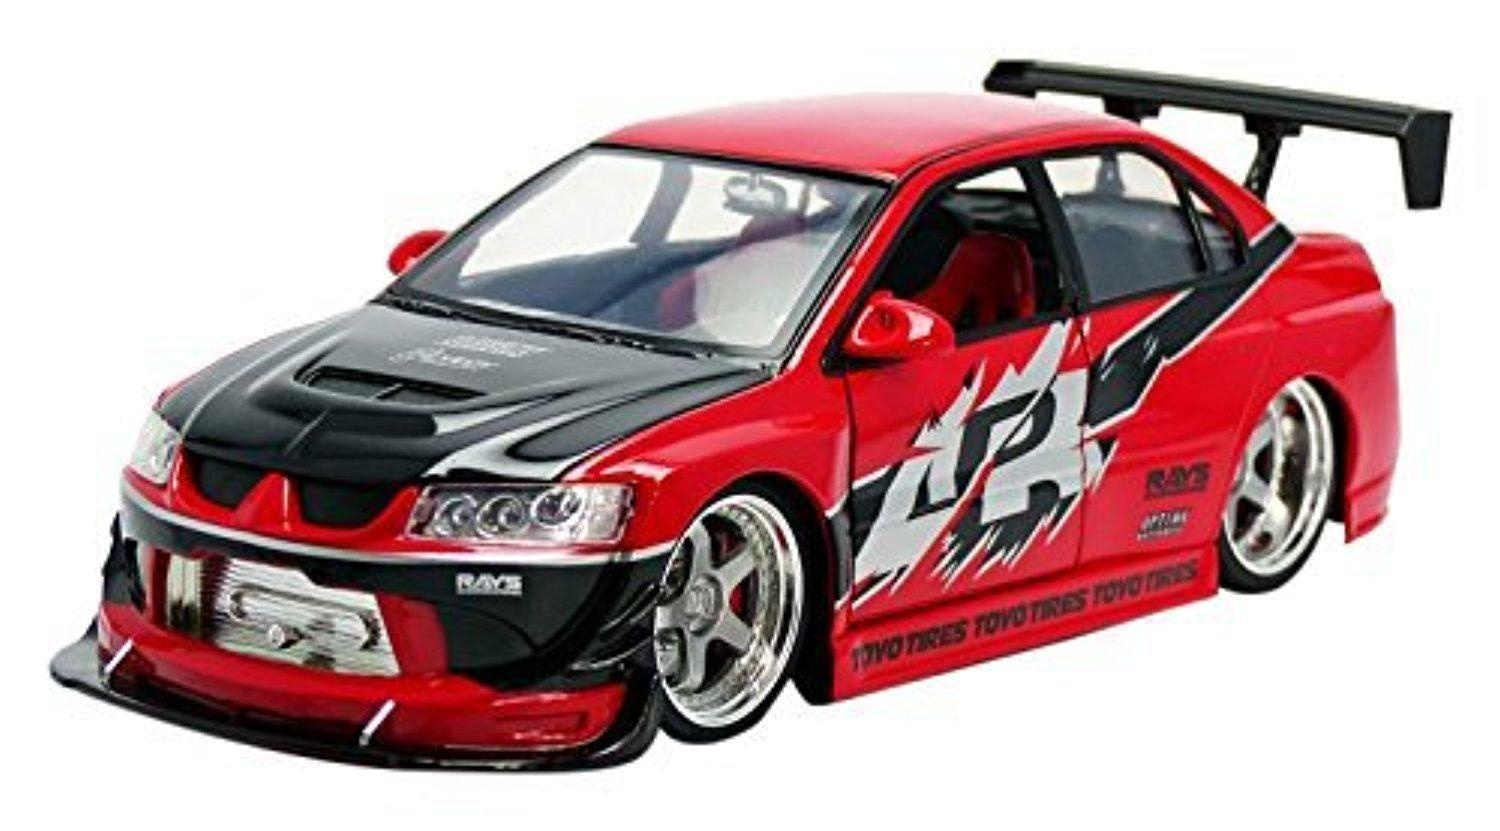 100 Mitsubishi Lancer Evolution Fast And Furious Image Carrelease Mitsubishi Lancer